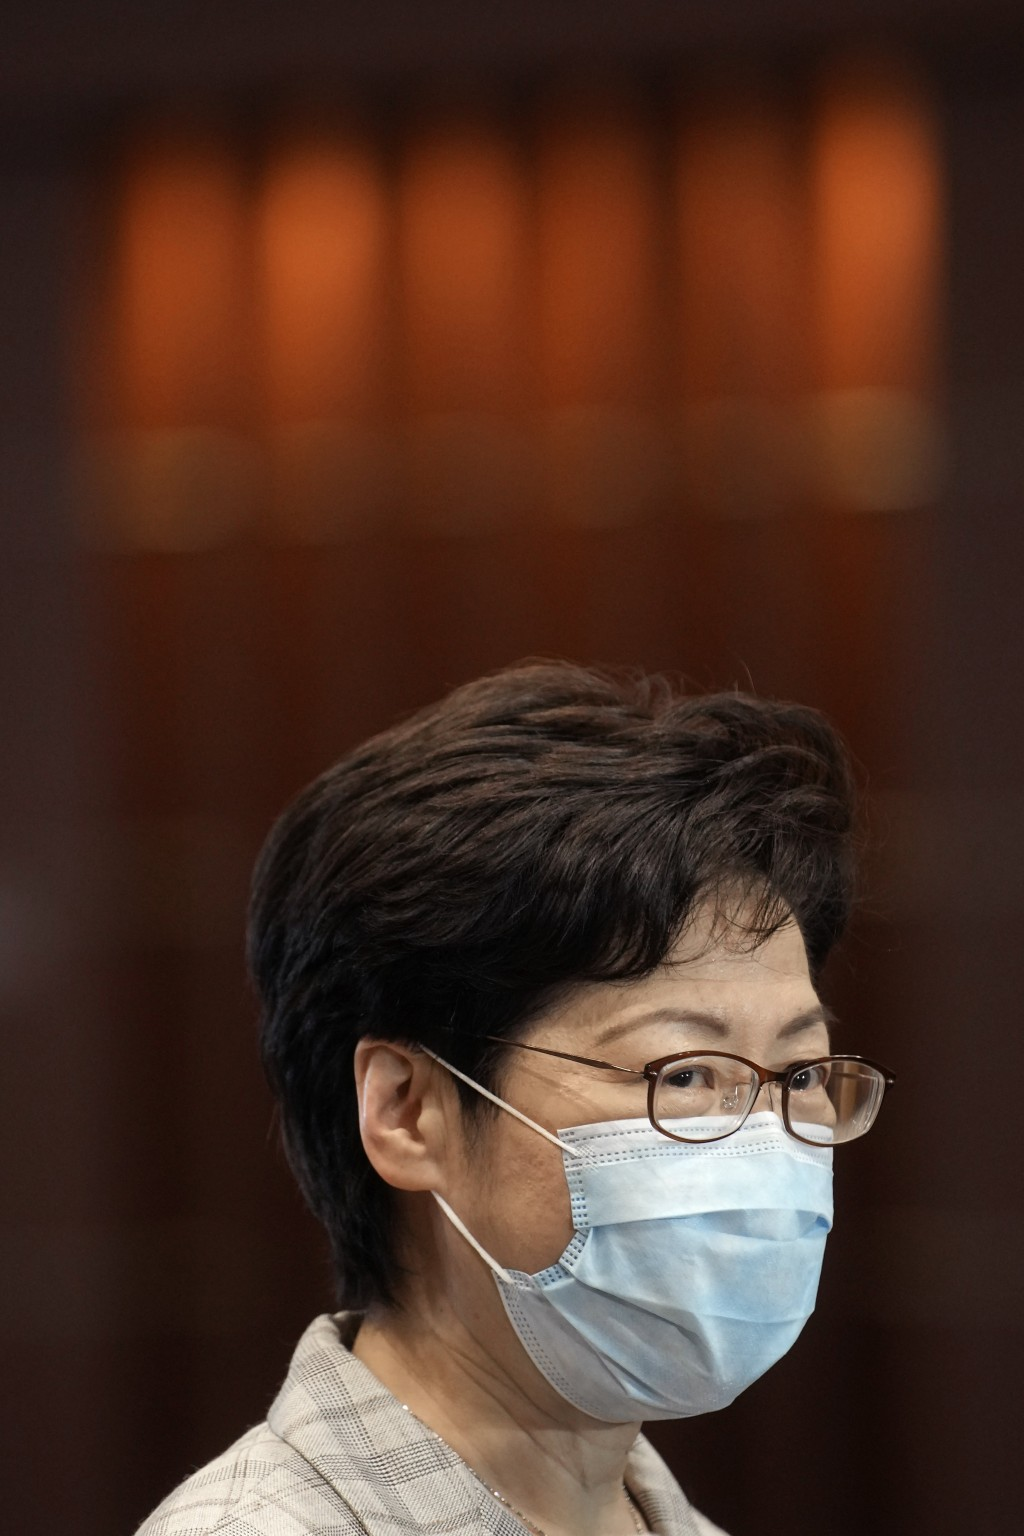 Hong Kong Chief Executive Carrie Lam speaks during a press conference at a polling center for the election committee that will vote for the city's lea...